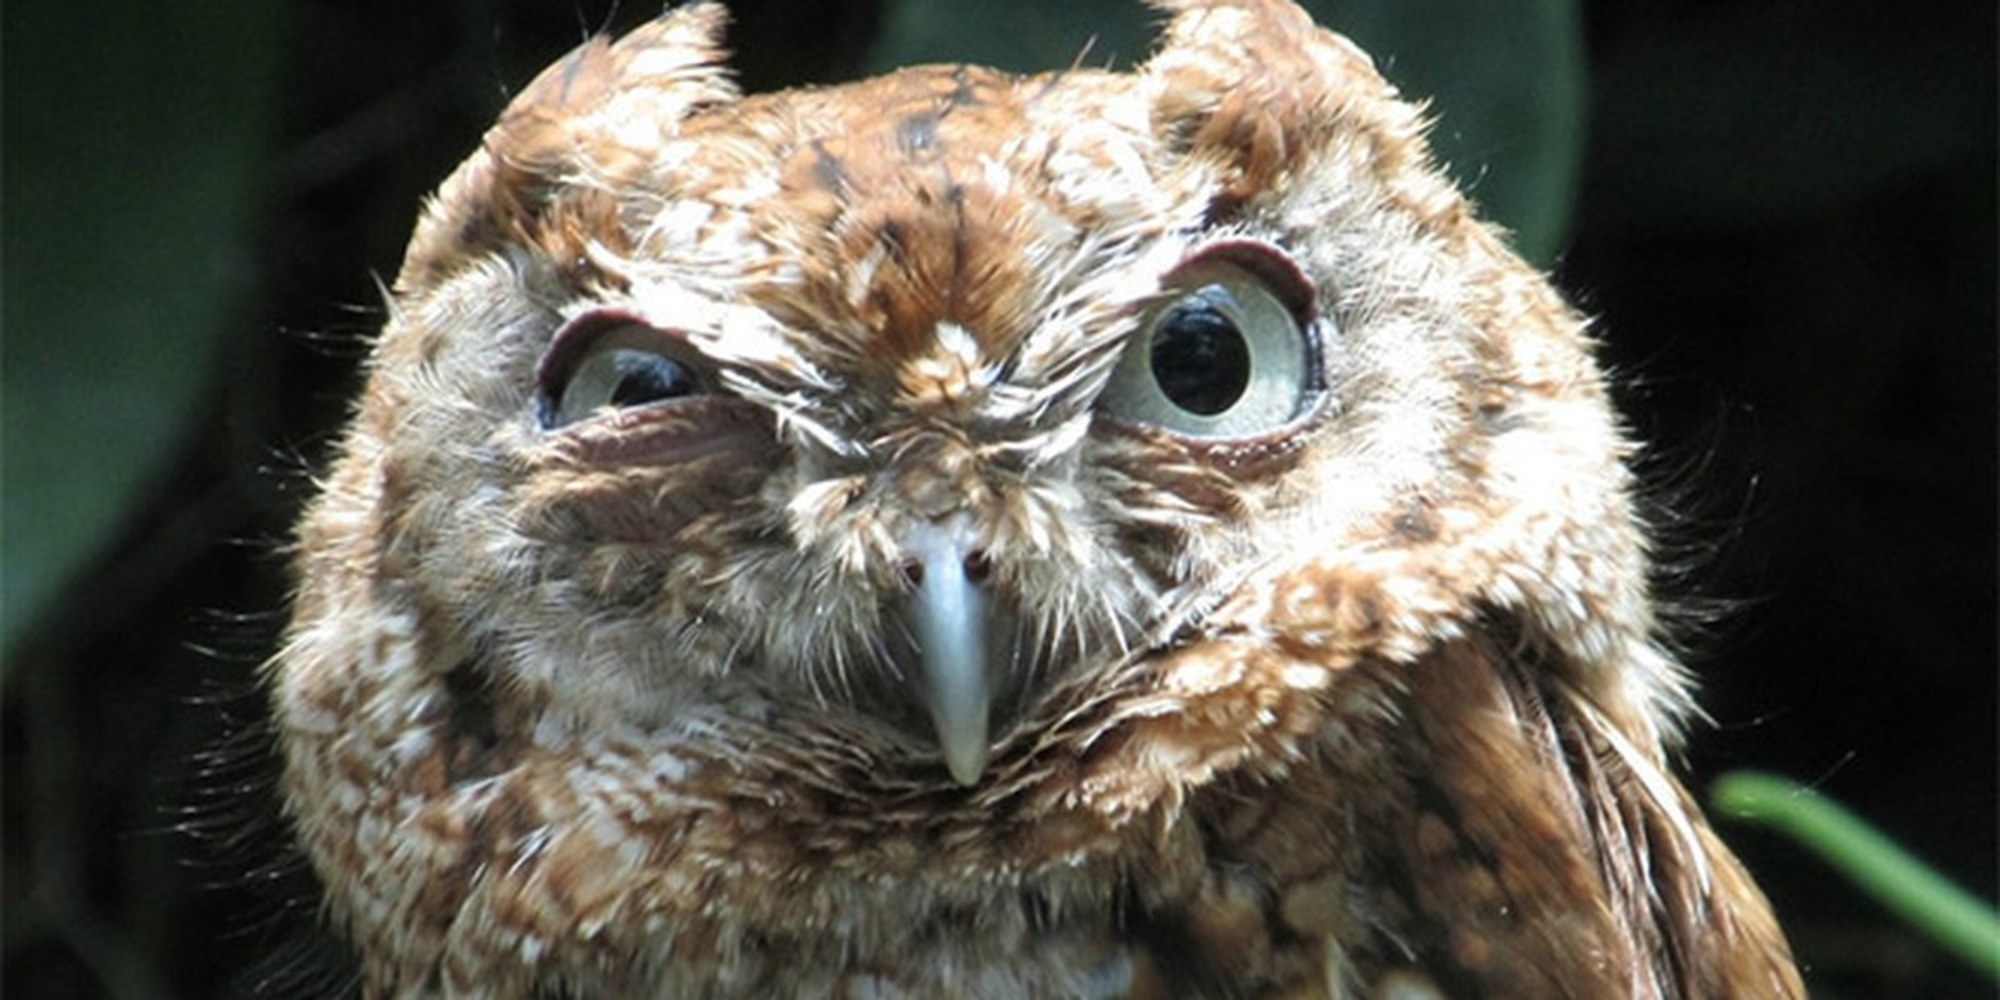 Angry Animals Google Search: 36 Grumpy Animals Who Have No Patience For You Today